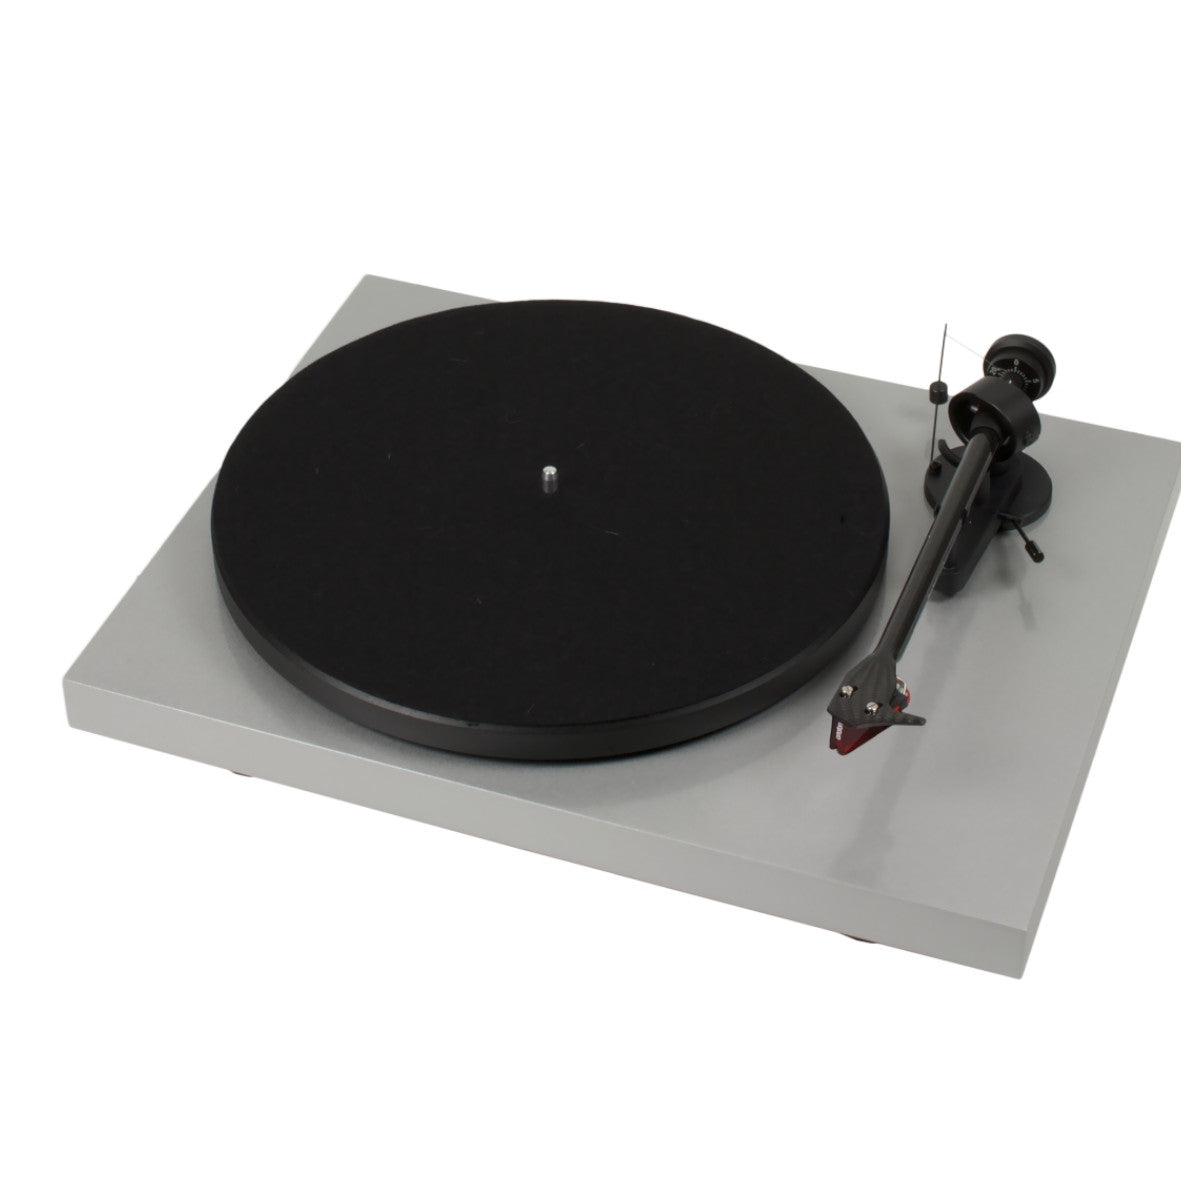 Pro-ject Carbon Debut / Maia S2 / Box 5